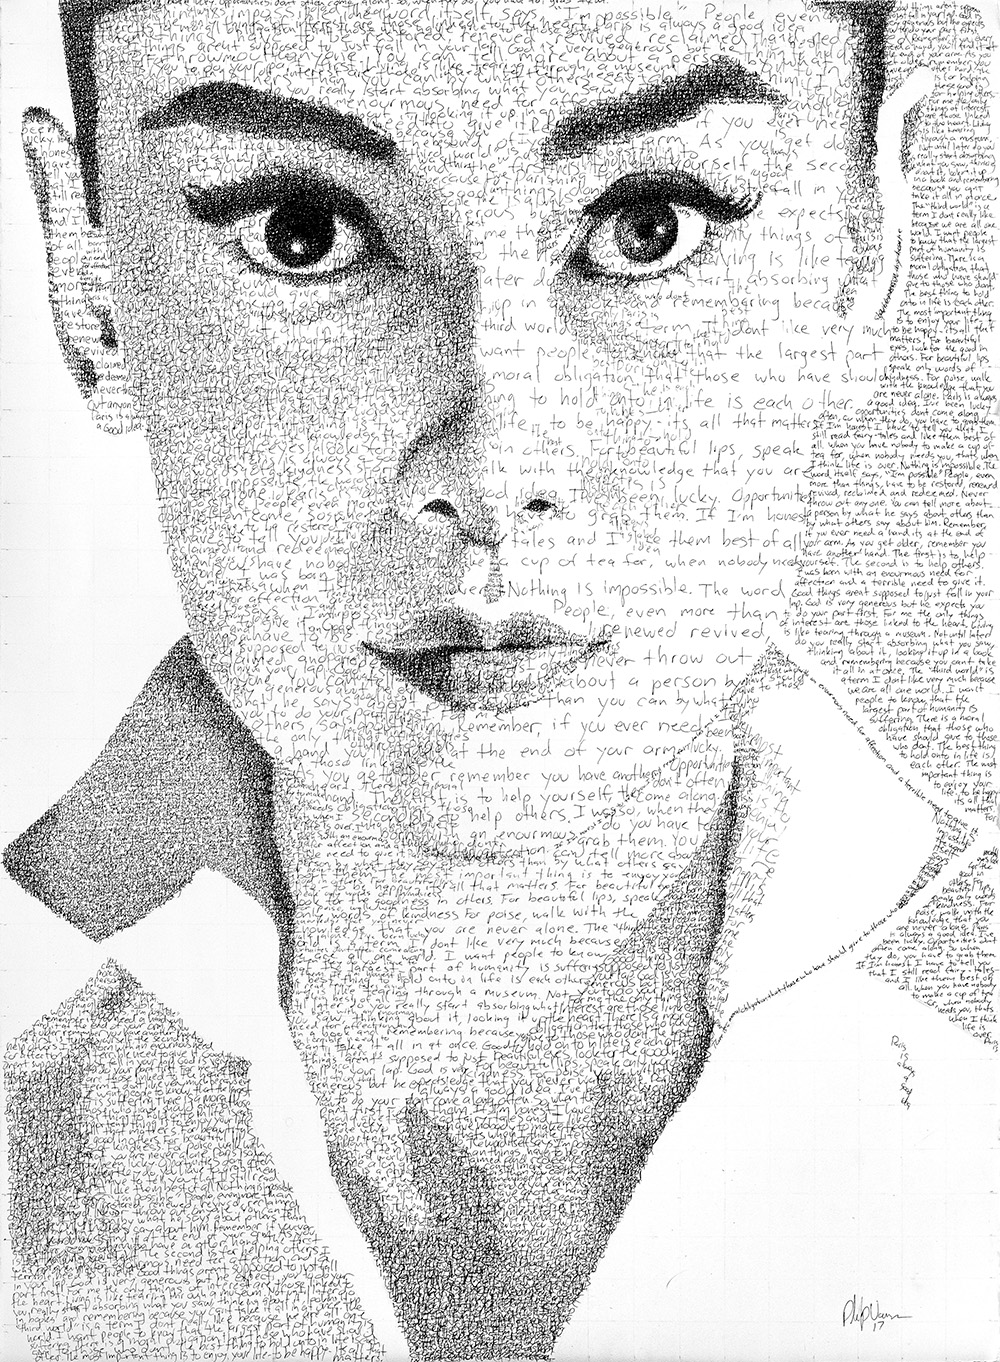 """""""Nothing is impossible, the word itself says 'I'm possible'!"""" - Audrey Hepburn in Her Own Words (2017)Pen on Watercolor Paper, 22x30 in"""